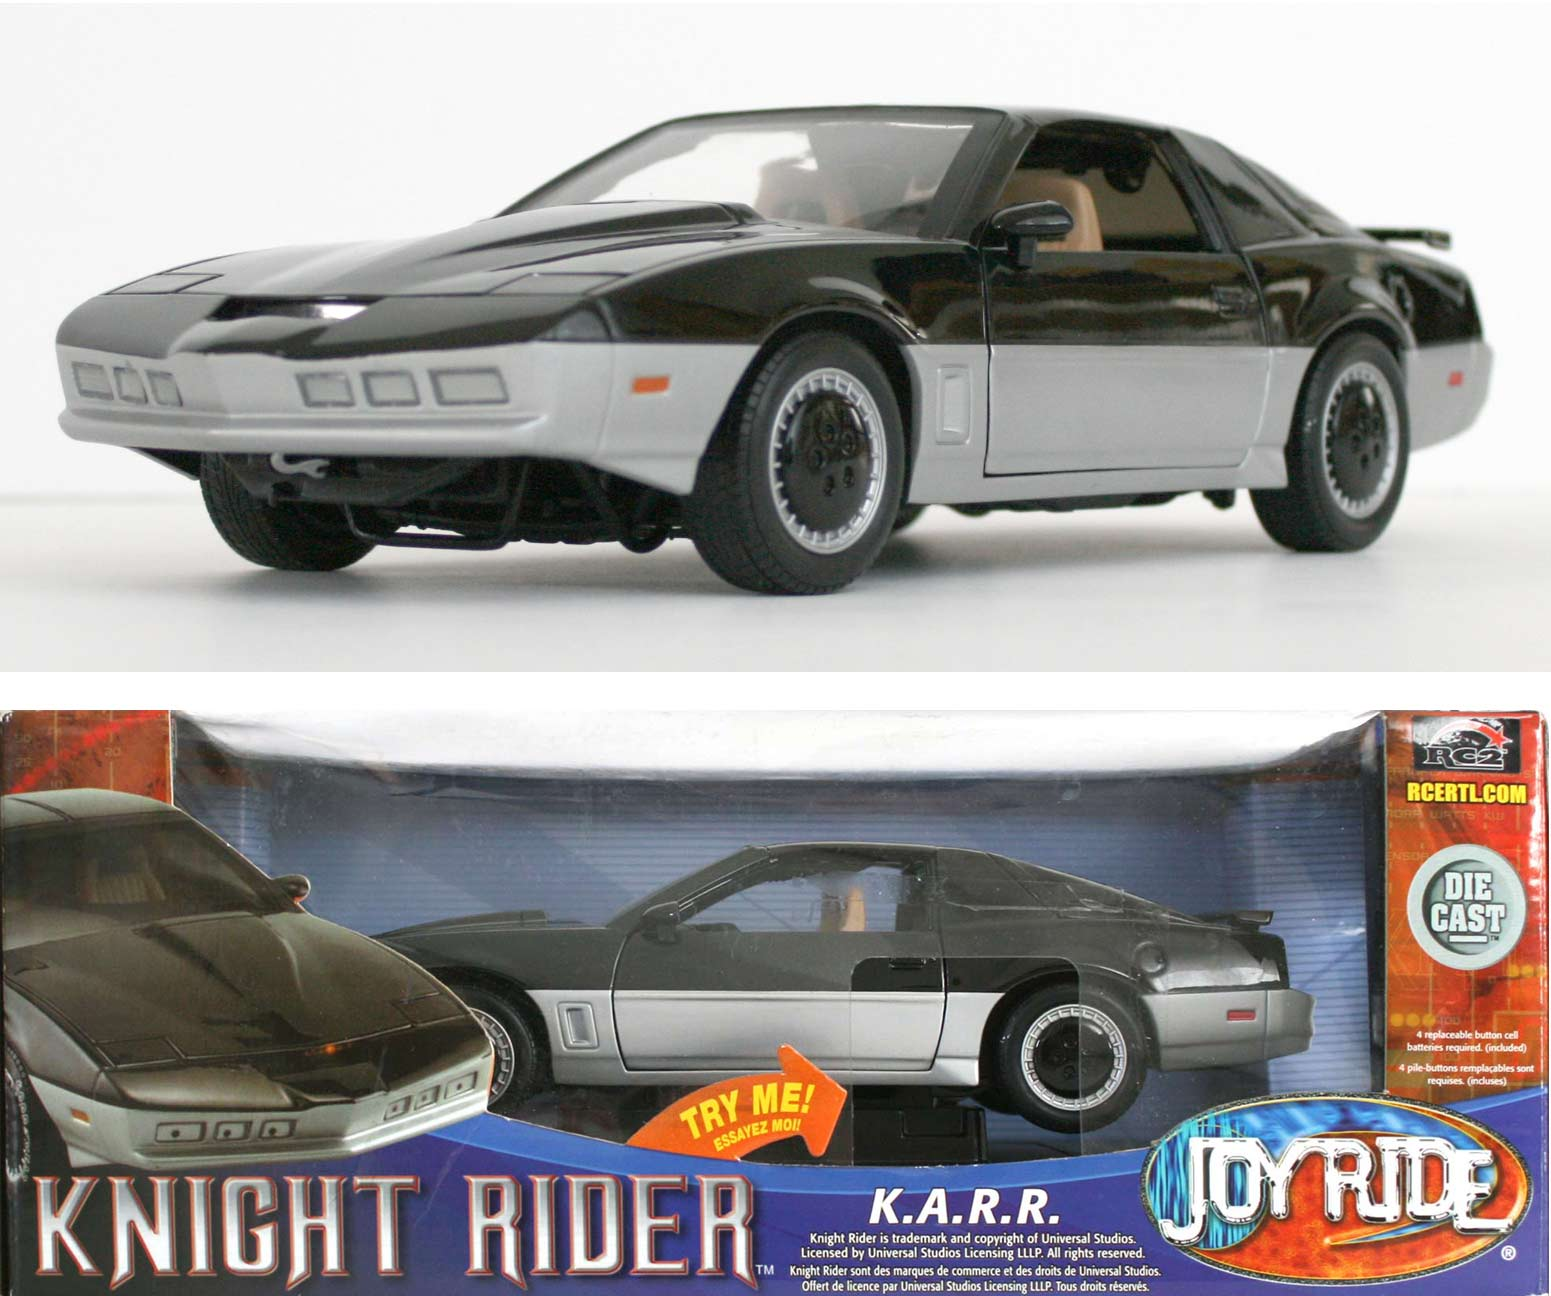 ERTL : K.A.R.R. (K2000) Knight Rider - ech 1/18 (2005)